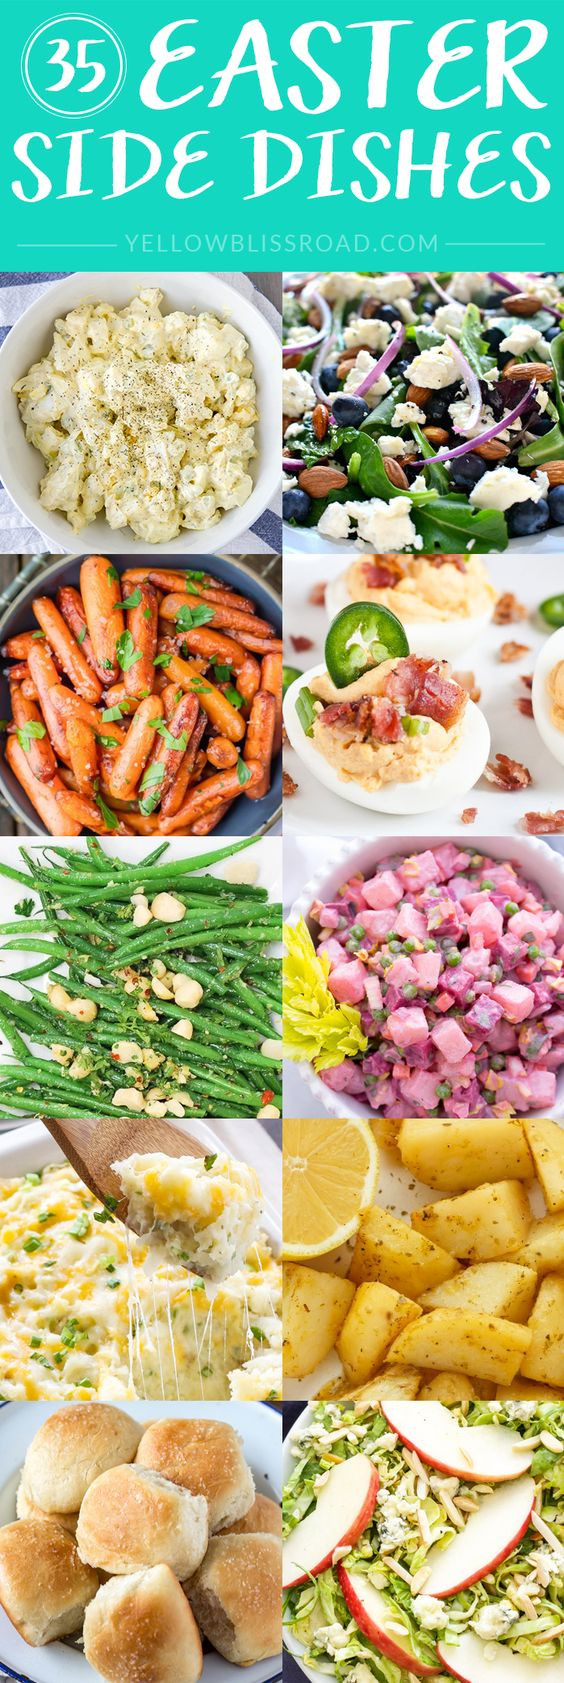 Easter Lunch Side Dishes  Easter Side Dishes